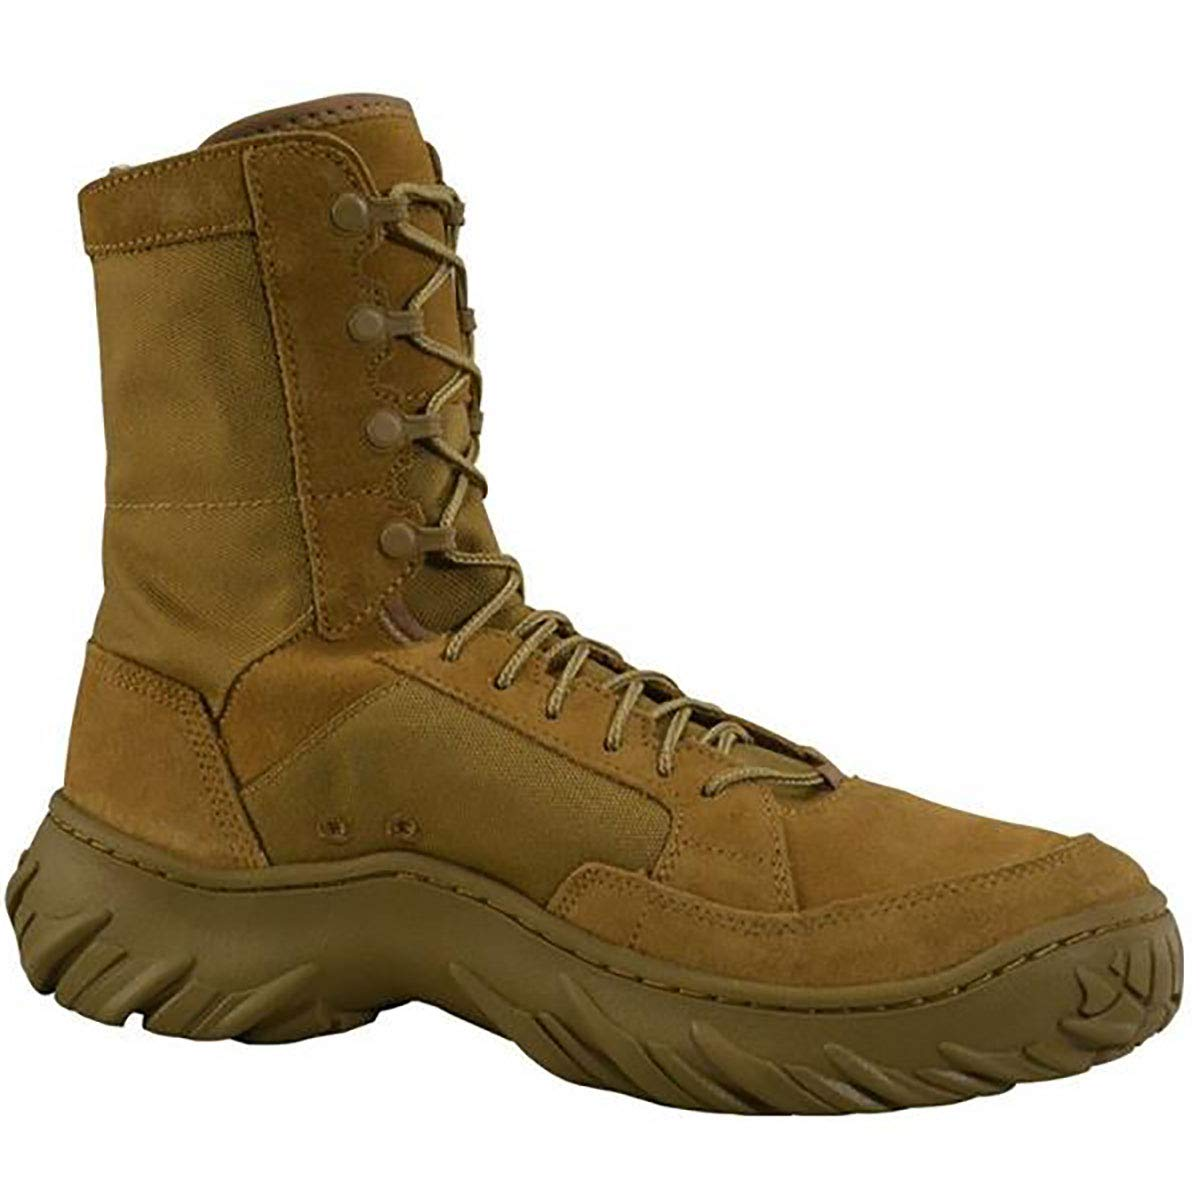 8330e7ff5ed Amazon.com: Oakley Mens Field Assault Boots: Shoes